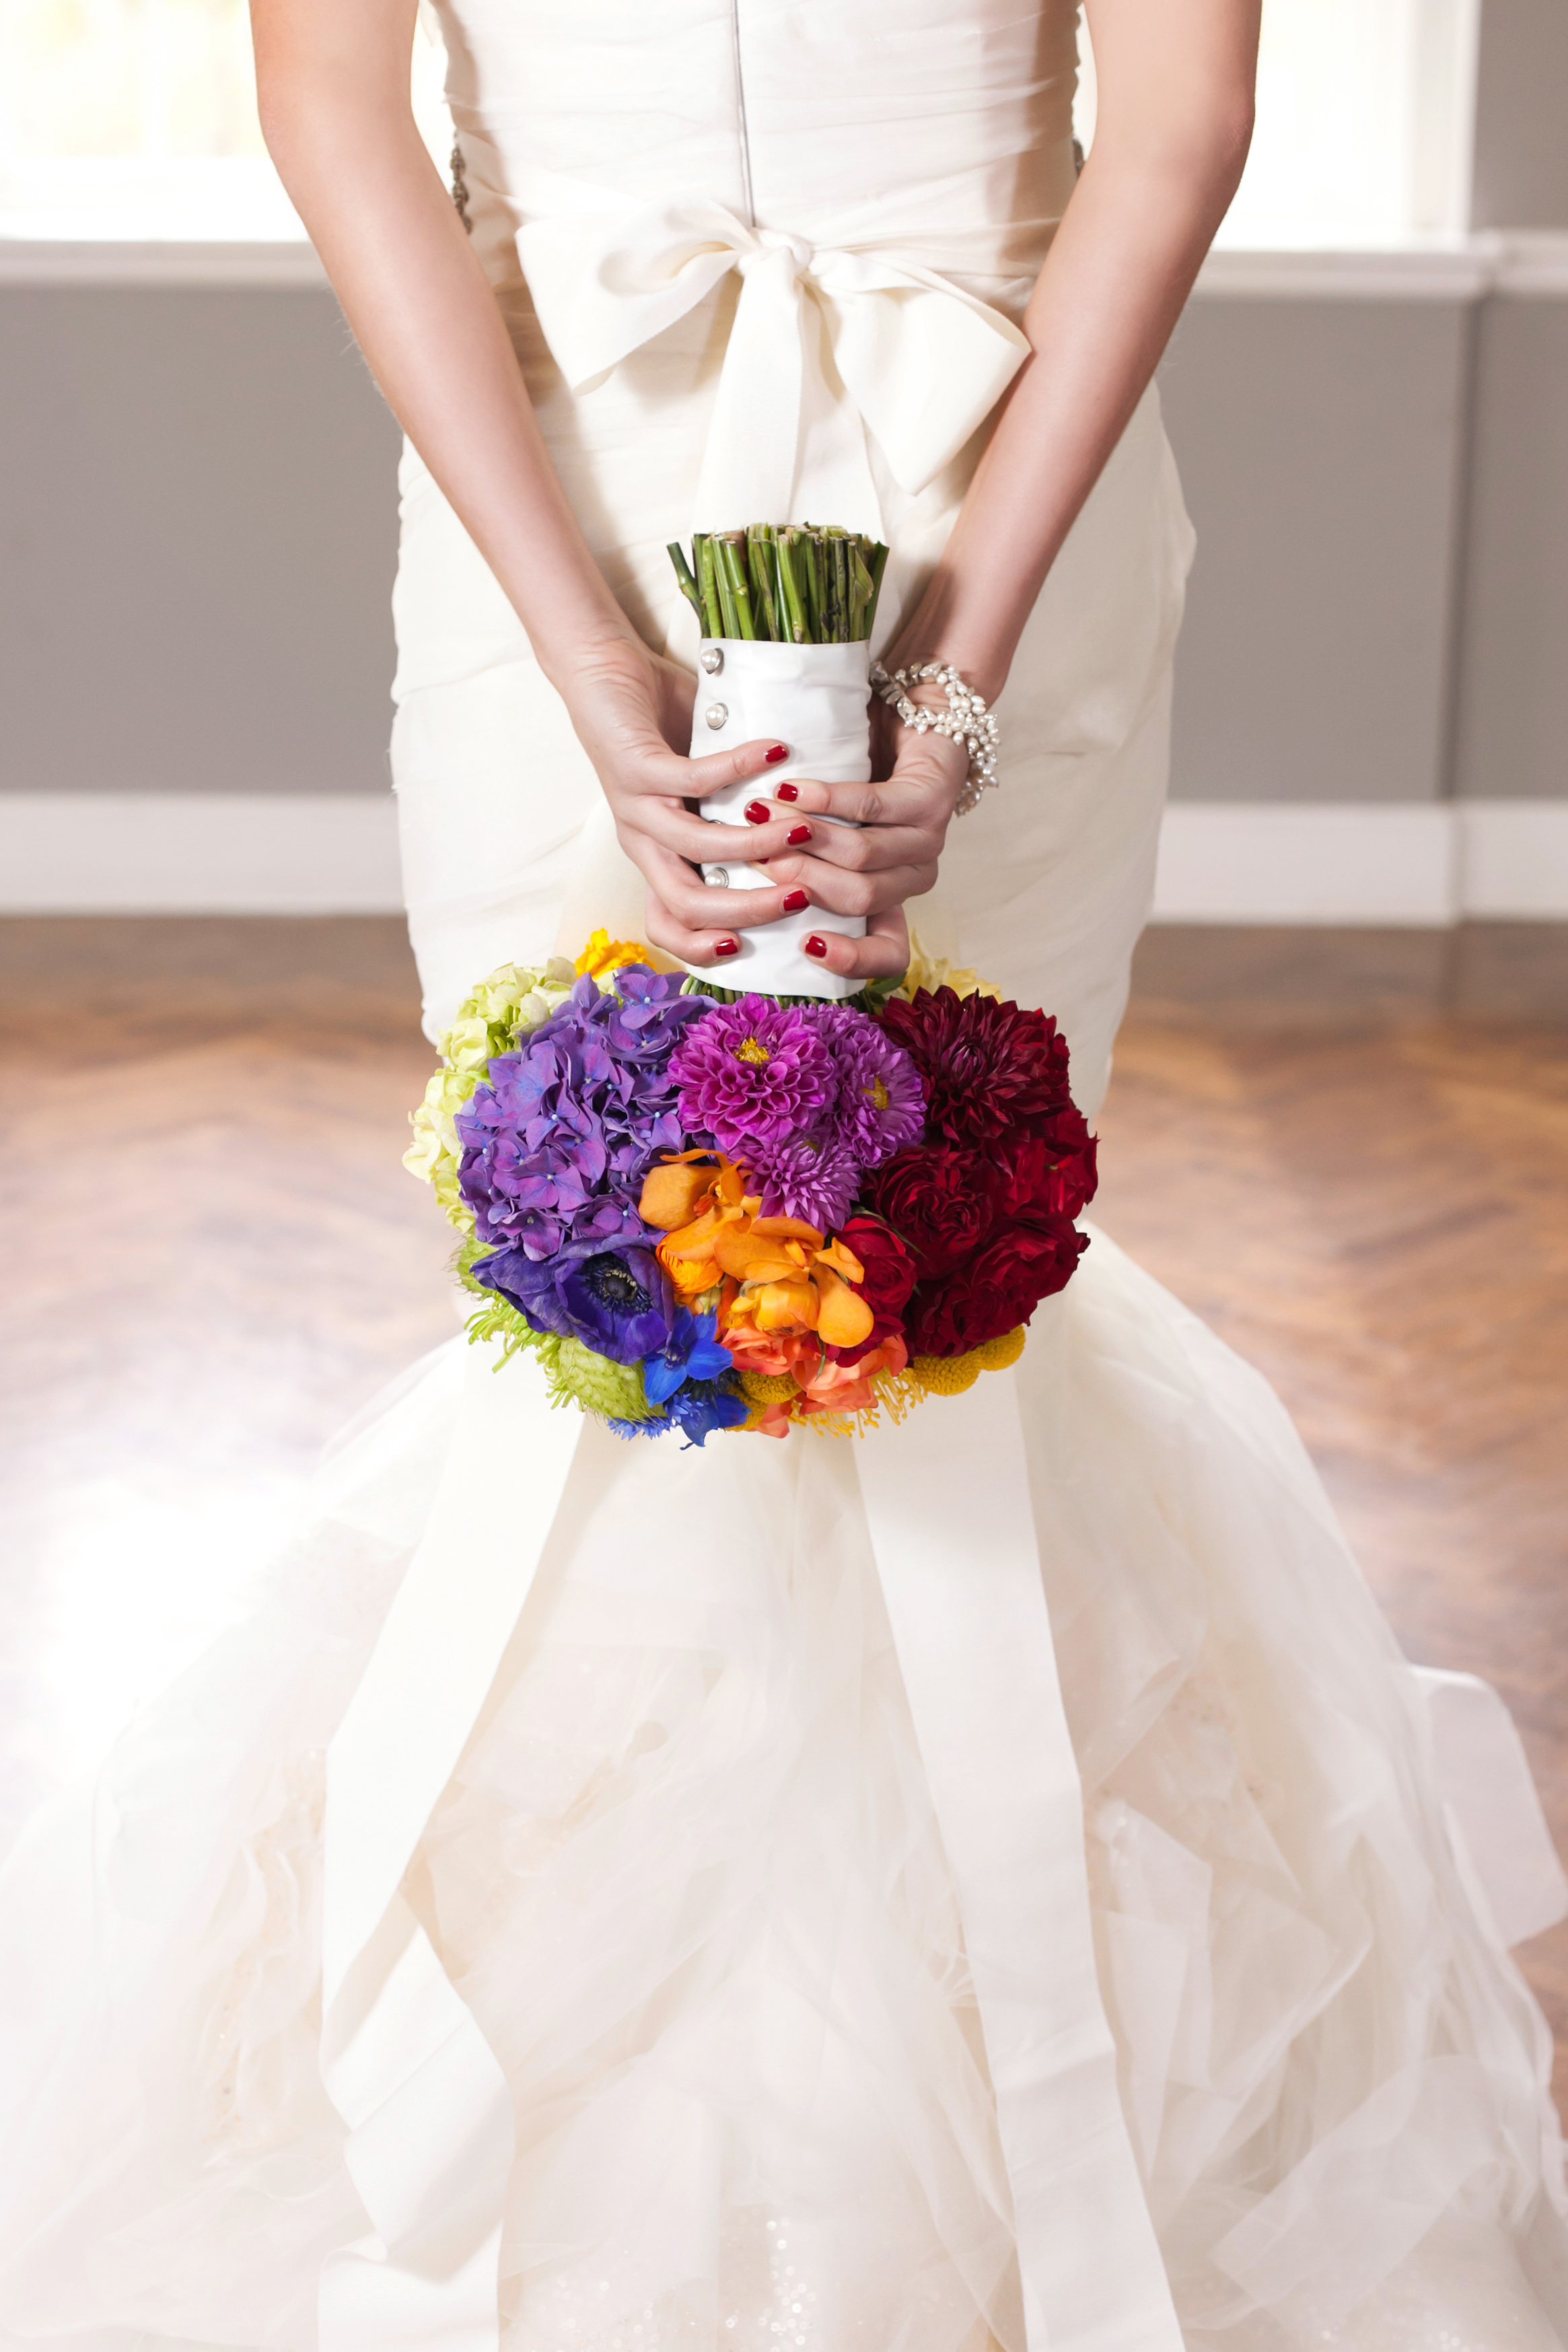 A tasteful rainbow bride bouquet designed by Just Bloomed